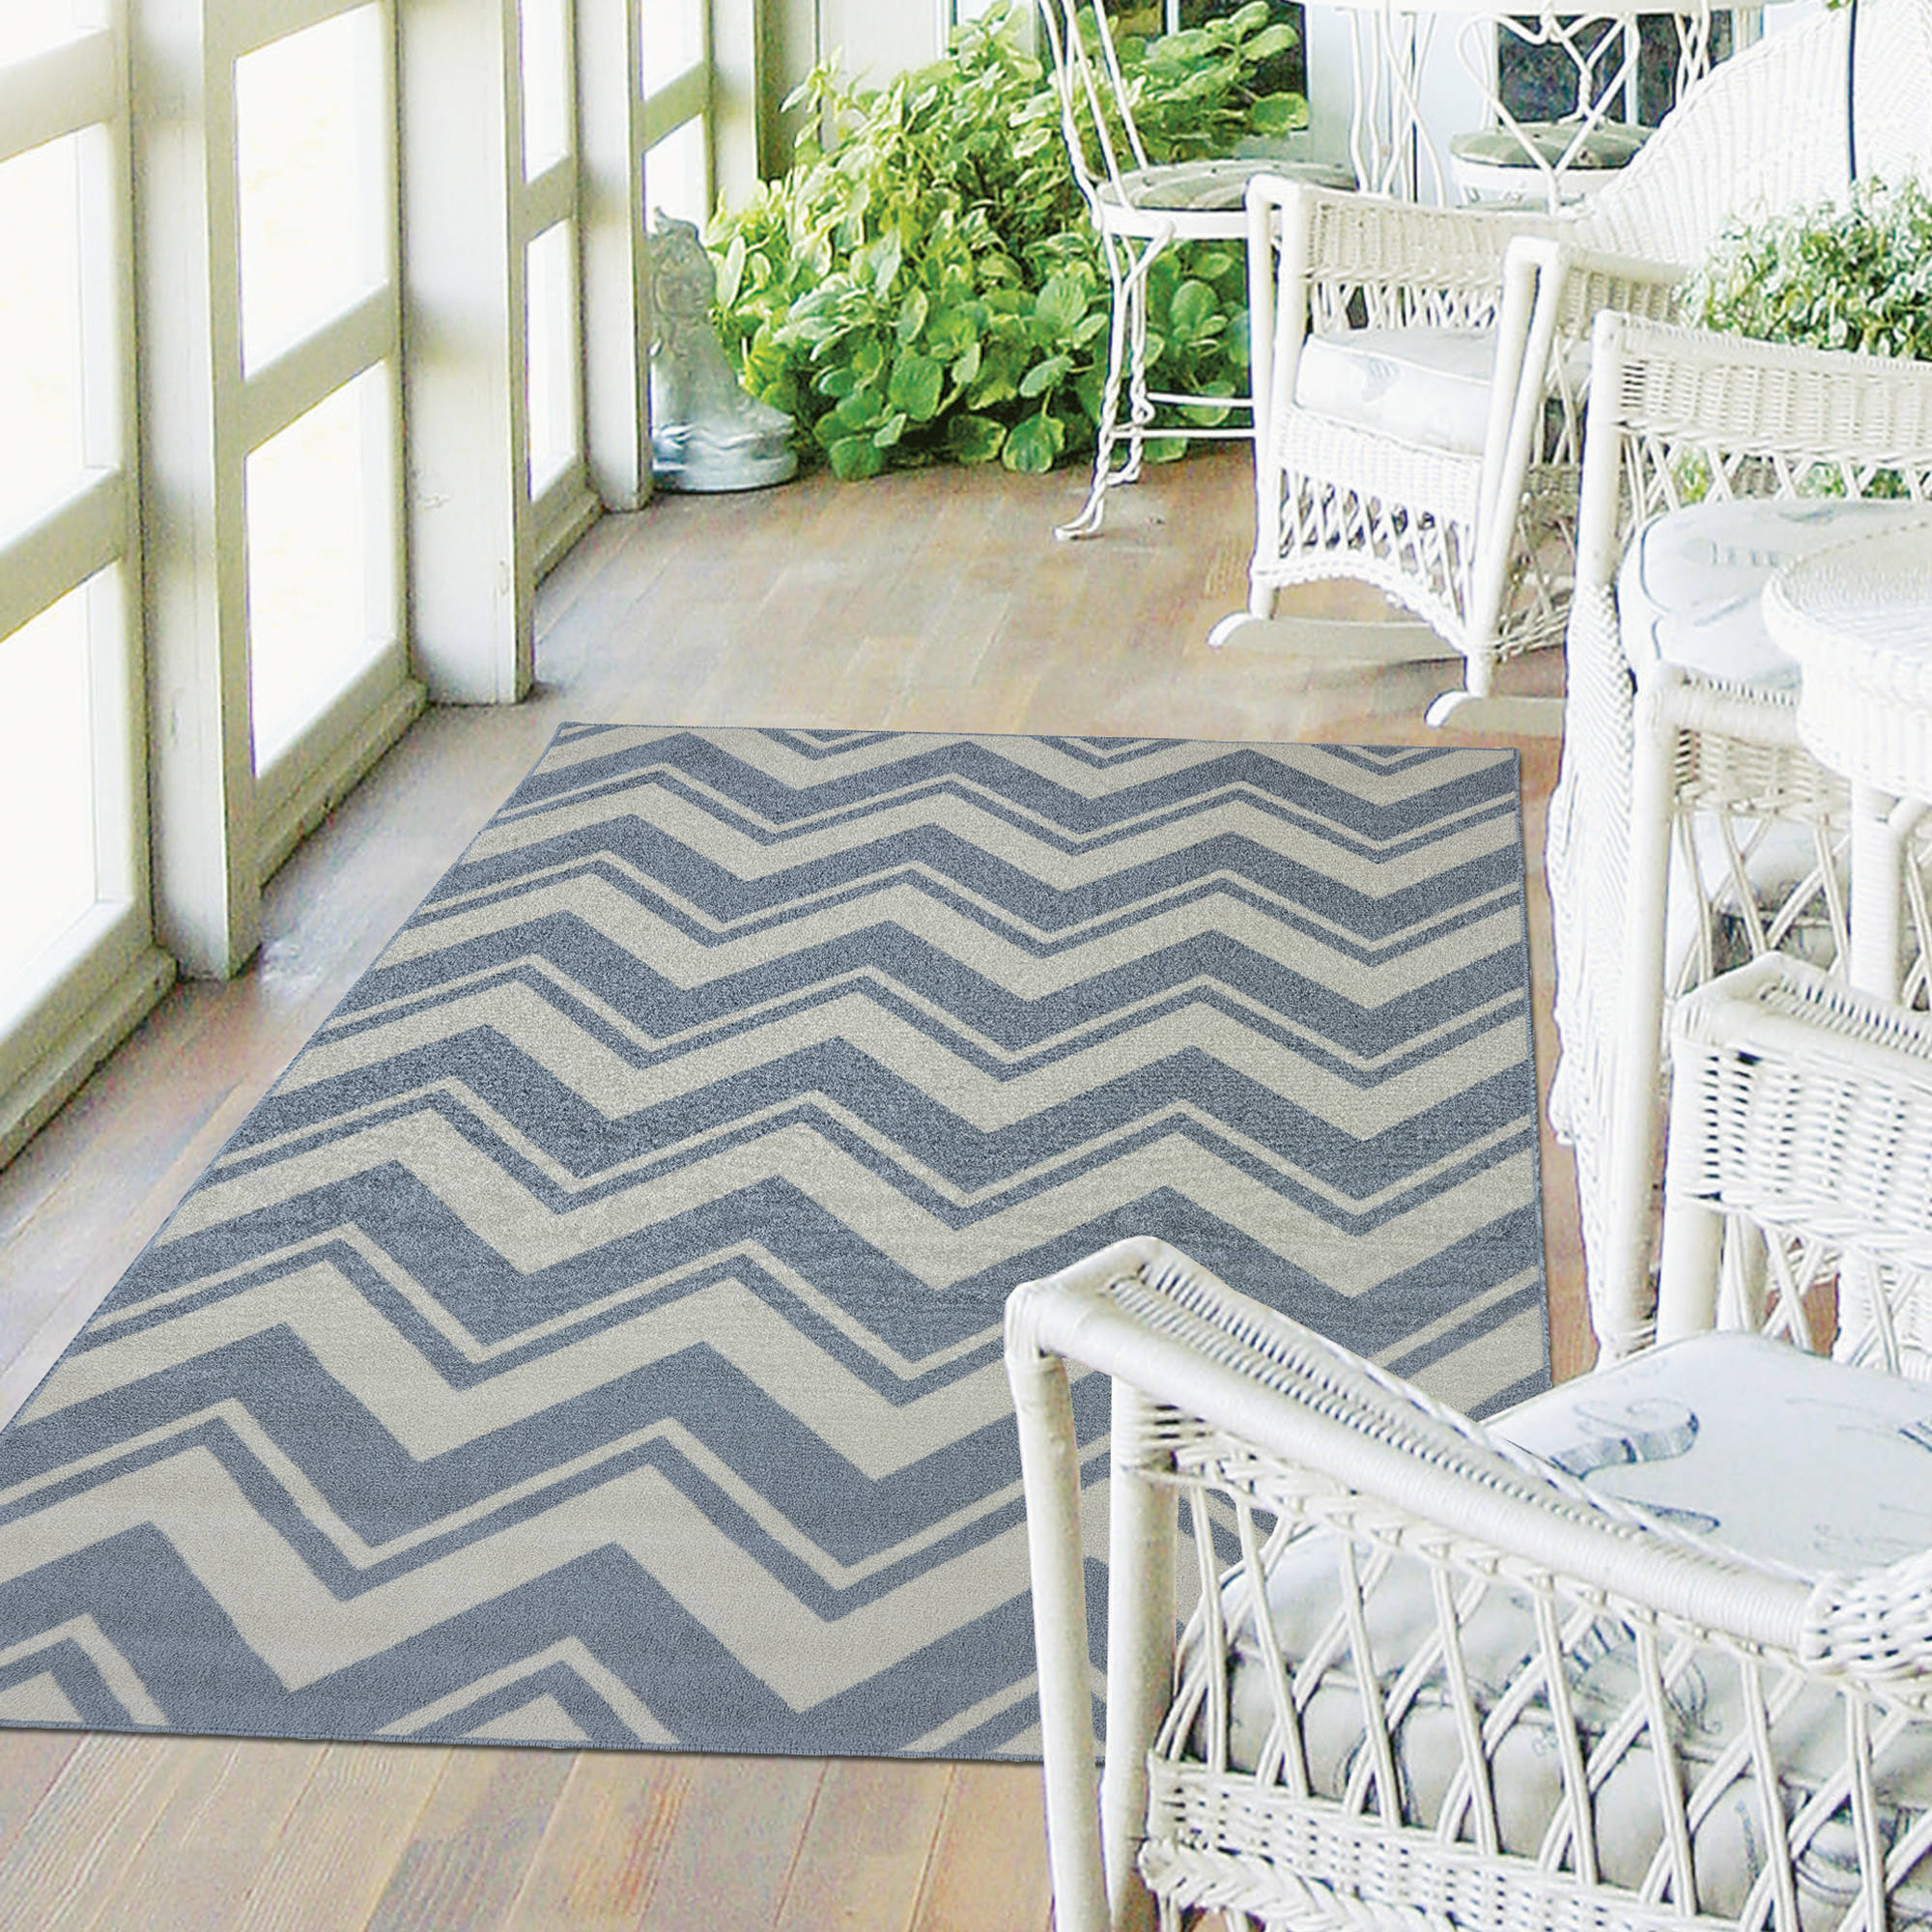 Mohawk Home Pool Zig Zag Indoor/Outdoor Nylon Rug, Blue